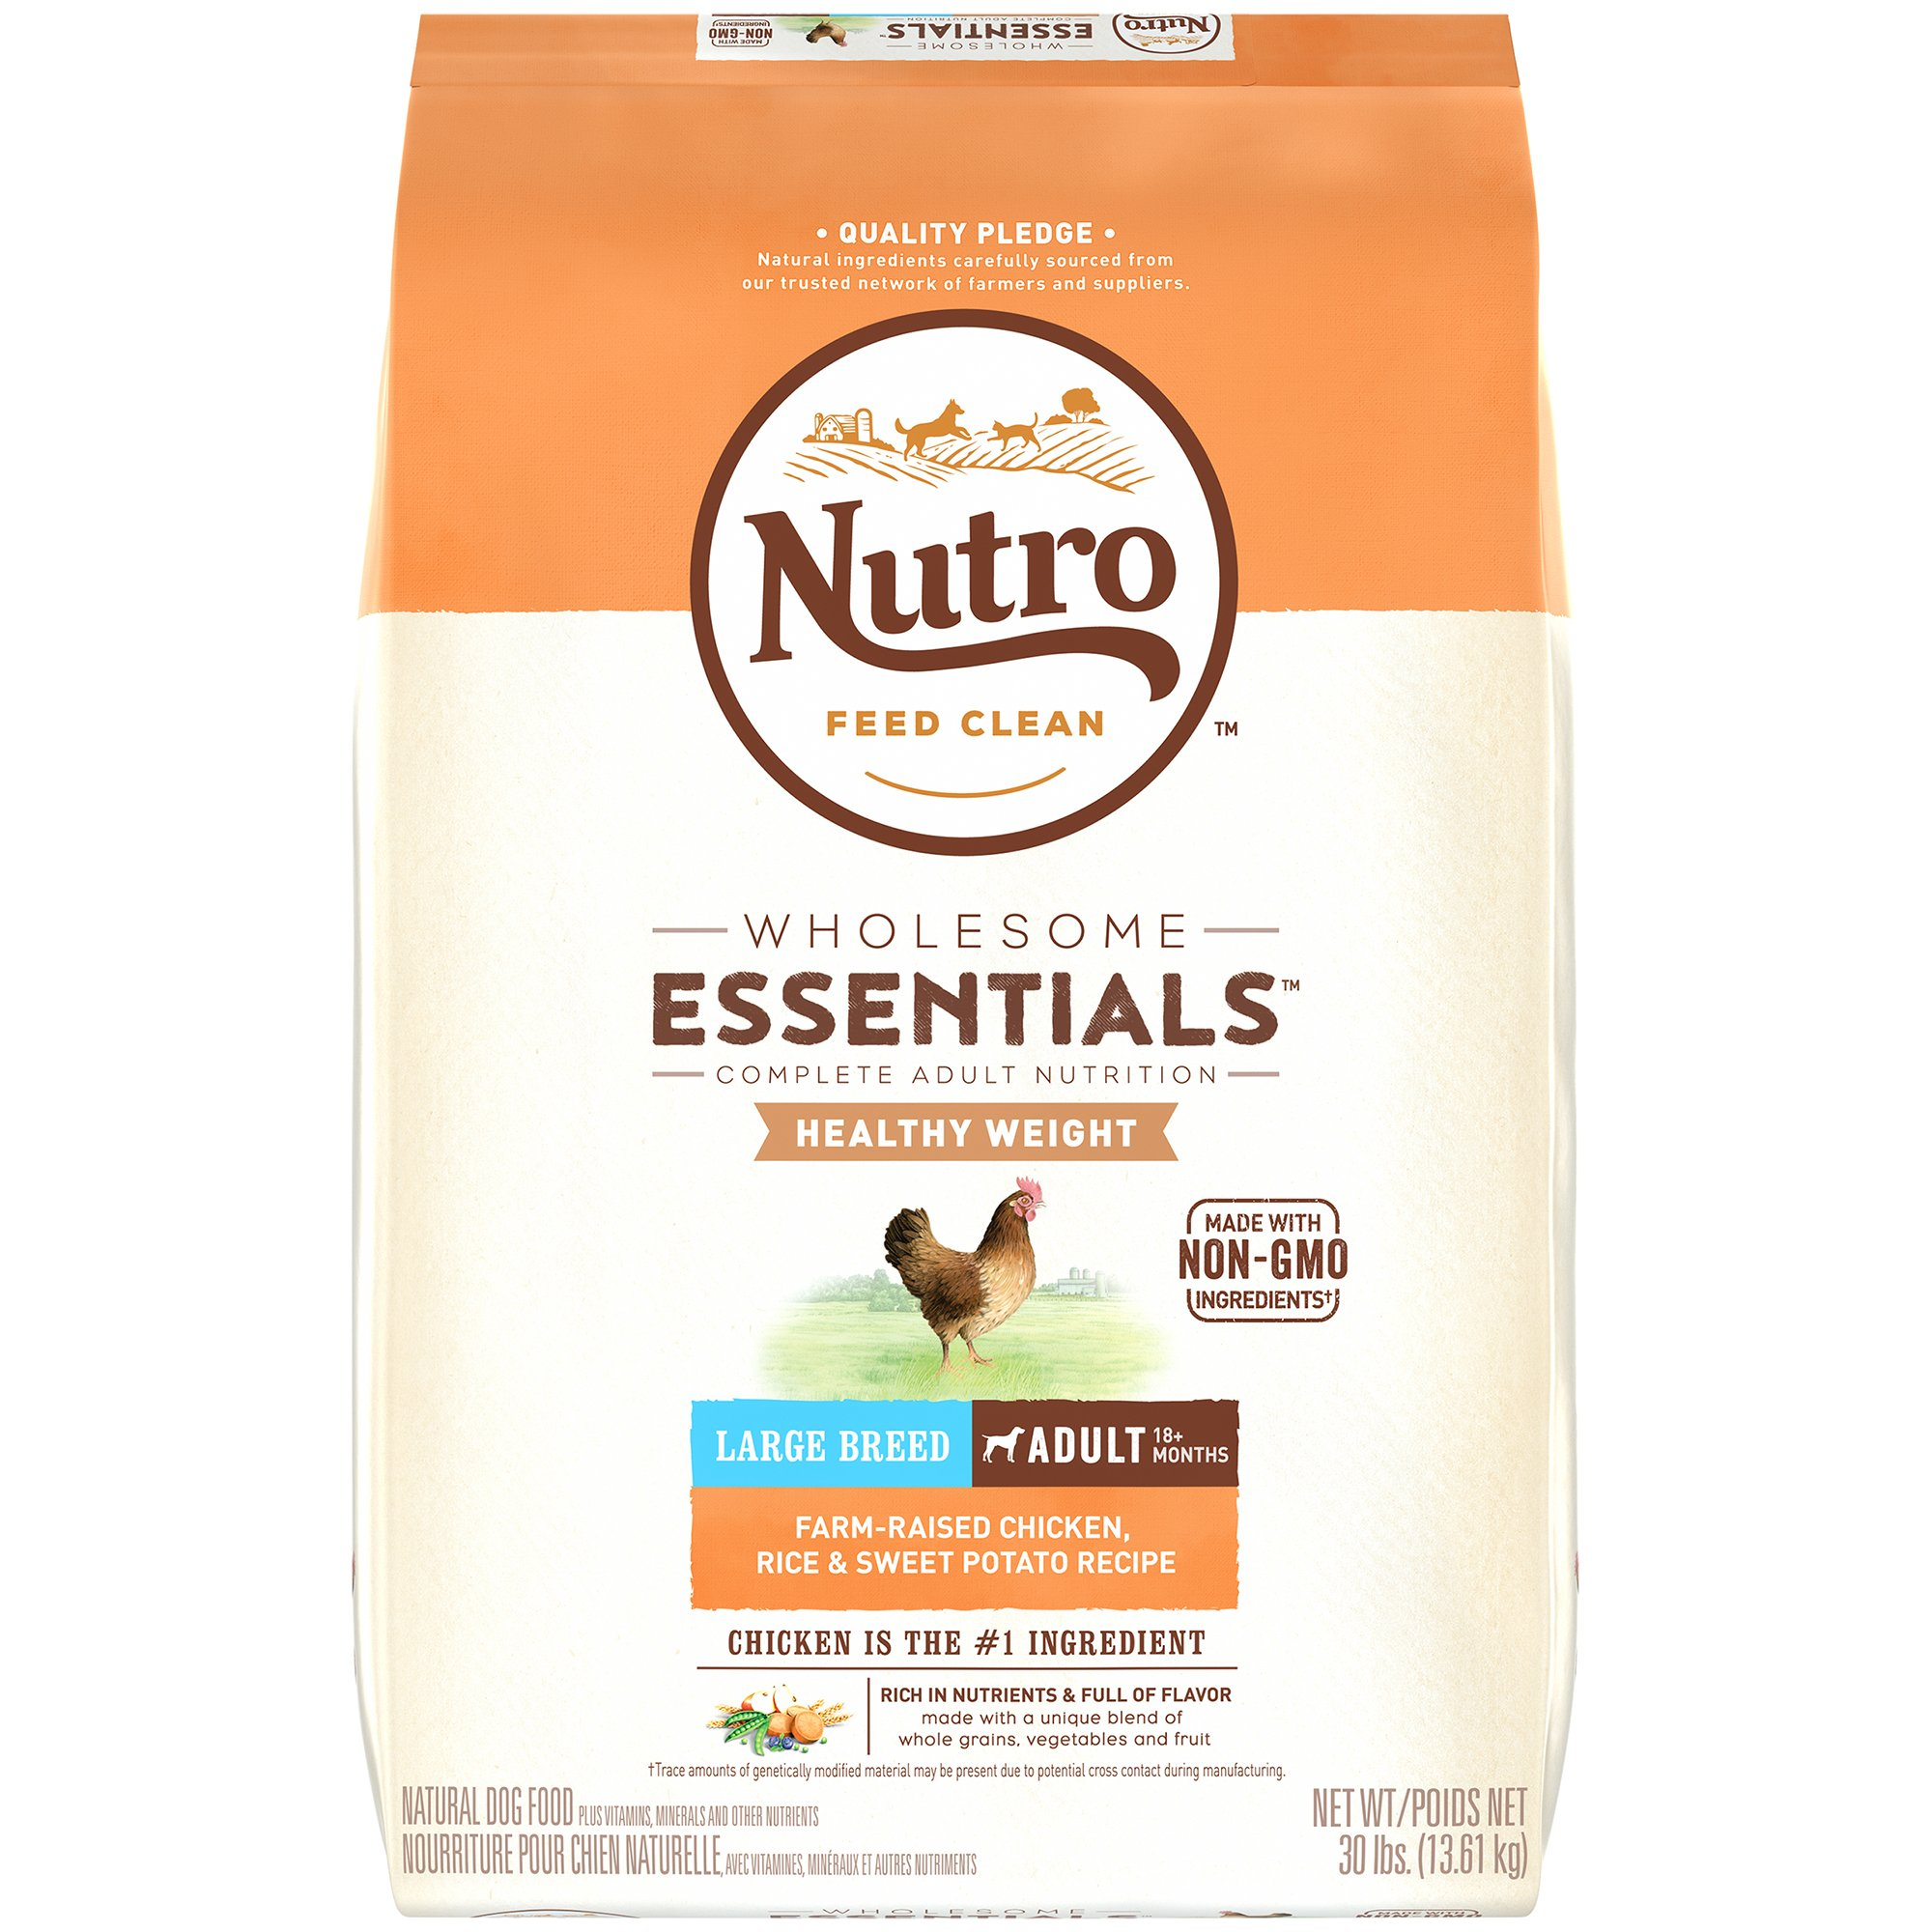 NUTRO WHOLESOME ESSENTIALS Natural Healthy Weight Adult Large Breed Dry Dog Food Farm-Raised Chicken, Rice & Sweet Potato Recipe, 30 lb. Bag by Nutro